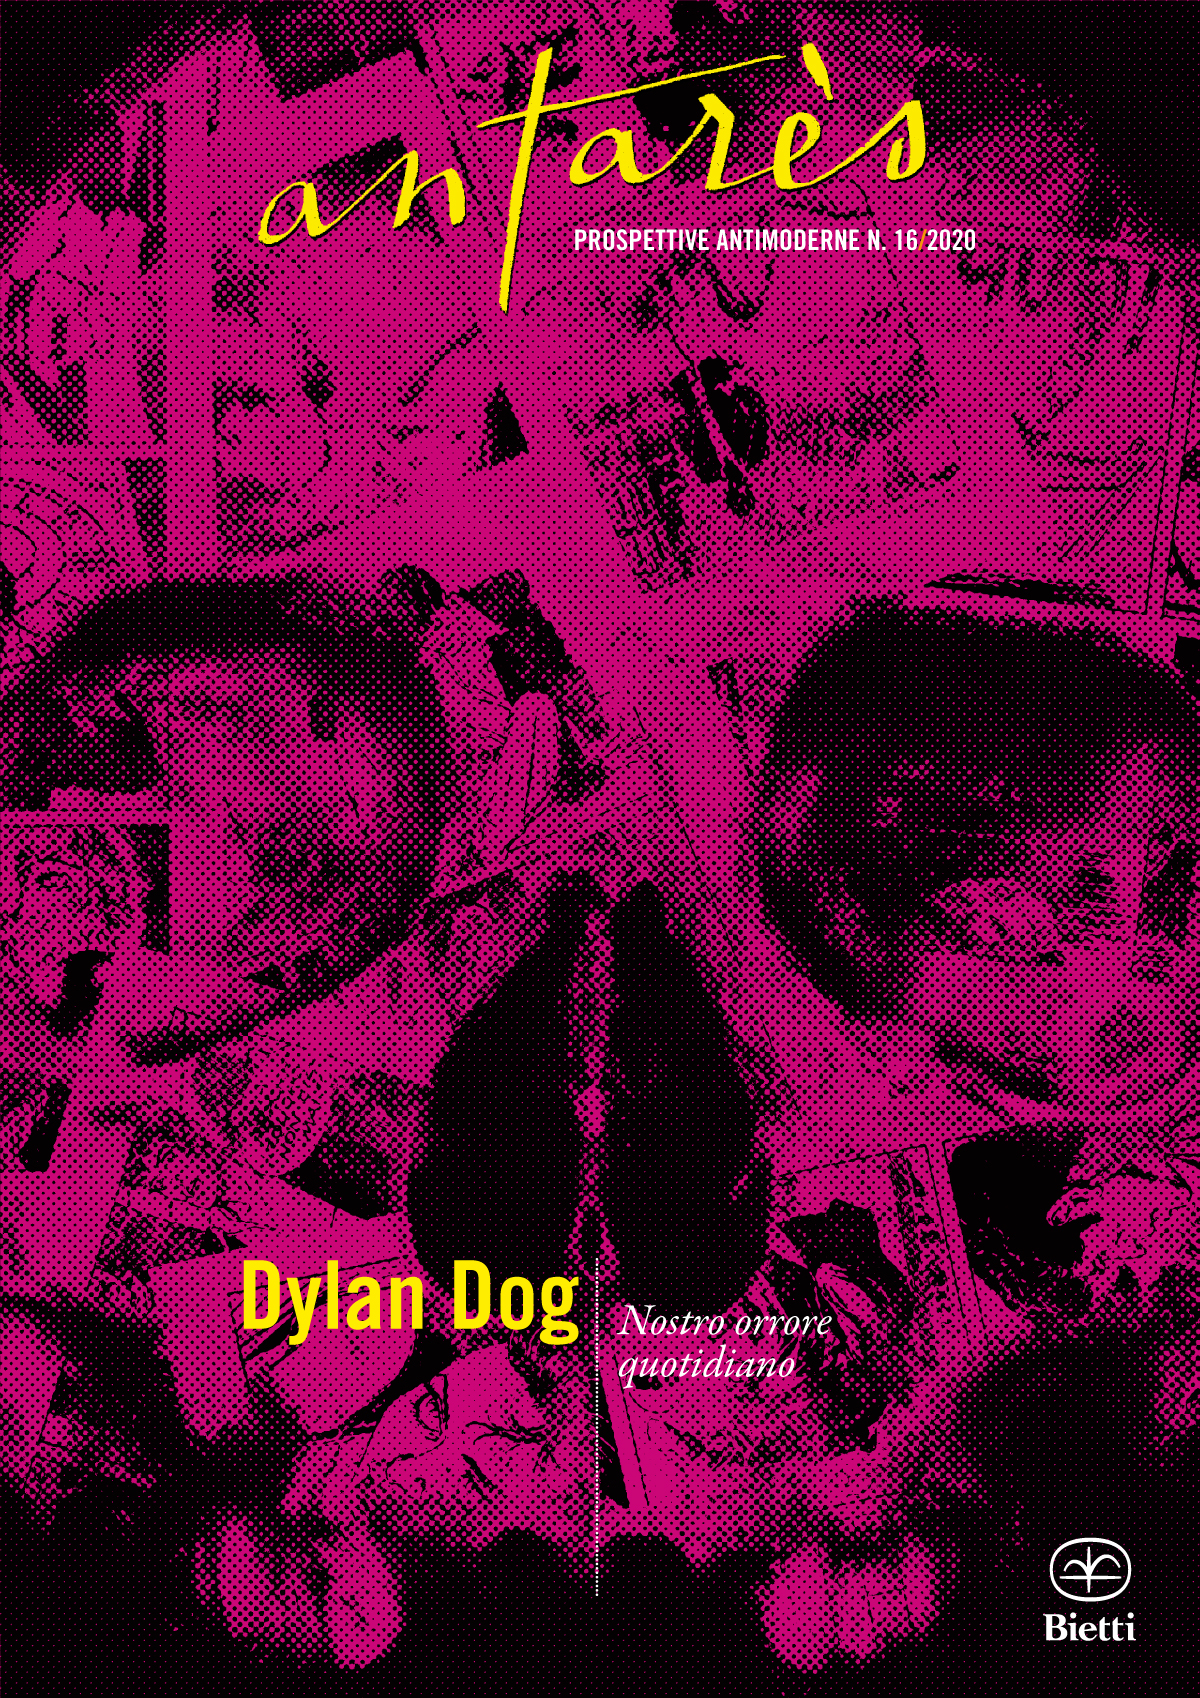 Dylan Dog - Nostro orrore quotidiano